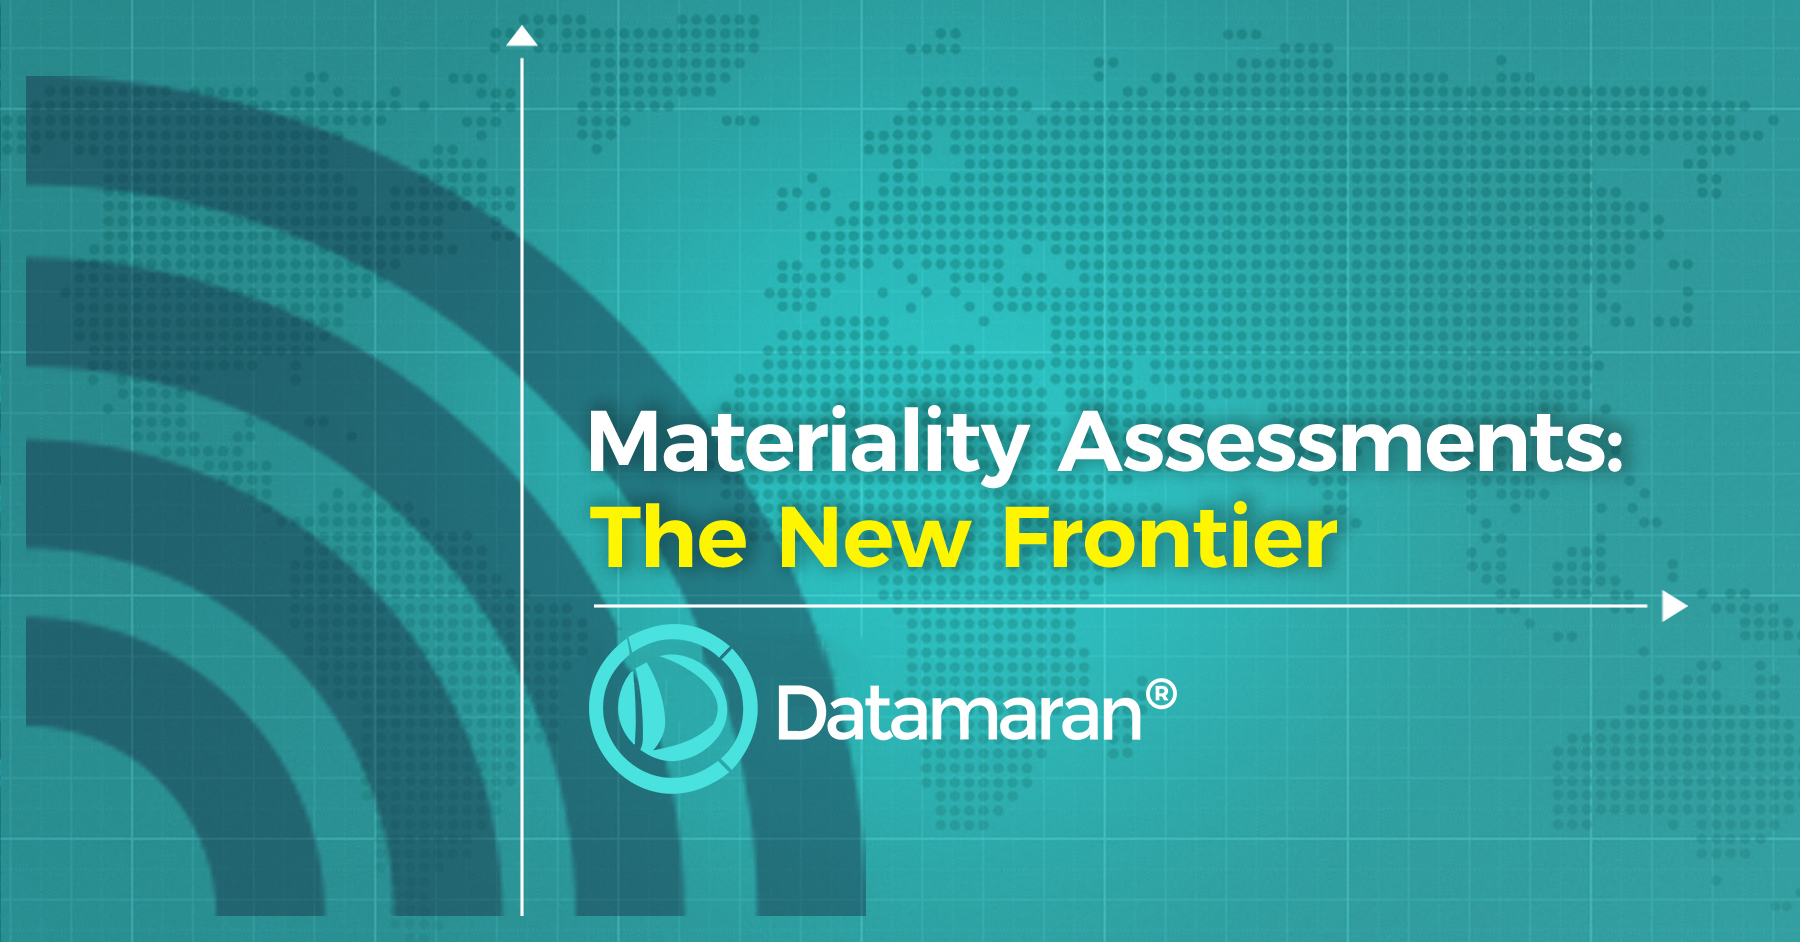 Materiality Assessments: The New Frontier